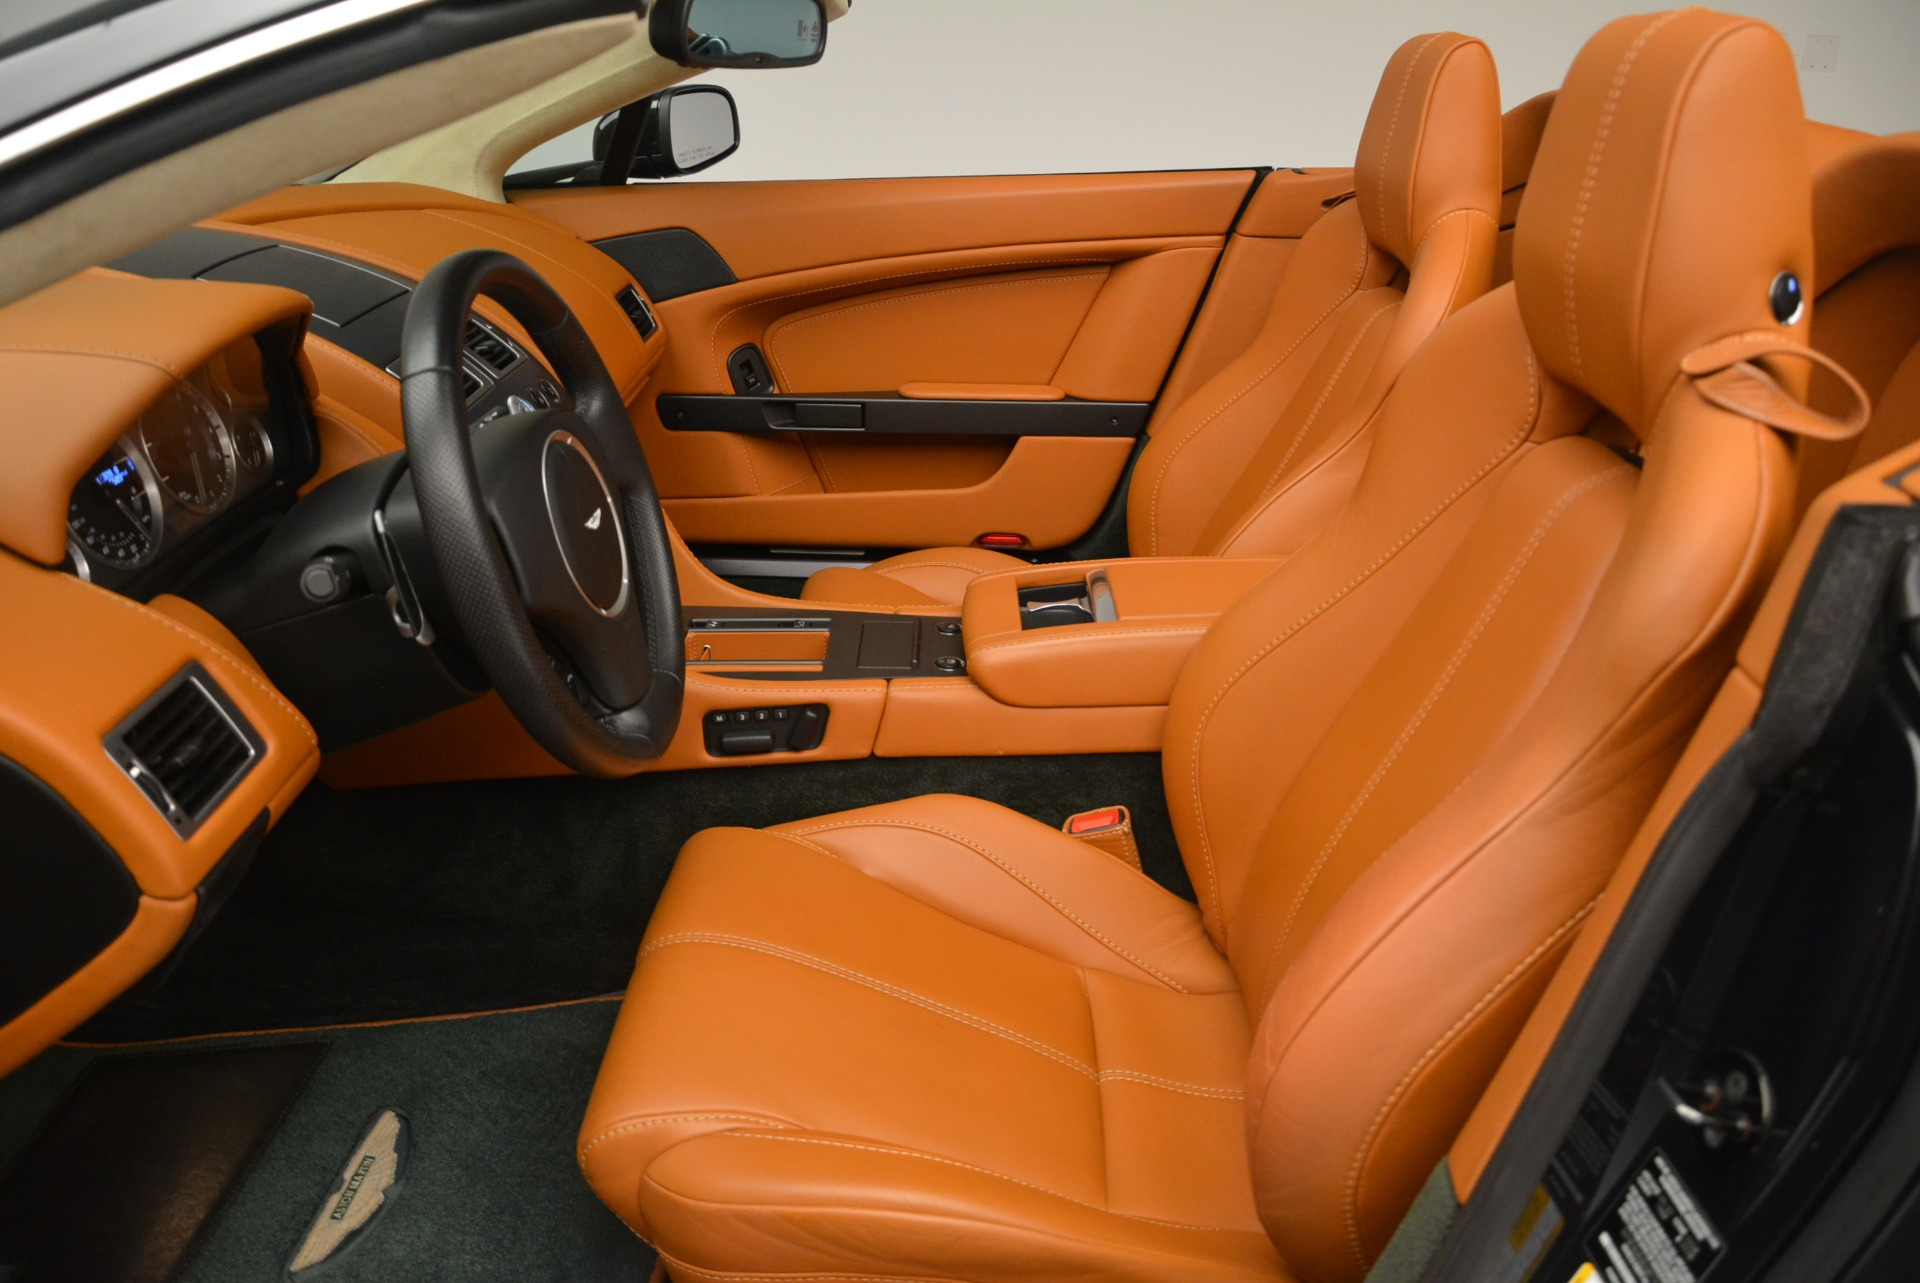 Used 2008 Aston Martin V8 Vantage Roadster For Sale In Greenwich, CT 2422_p16